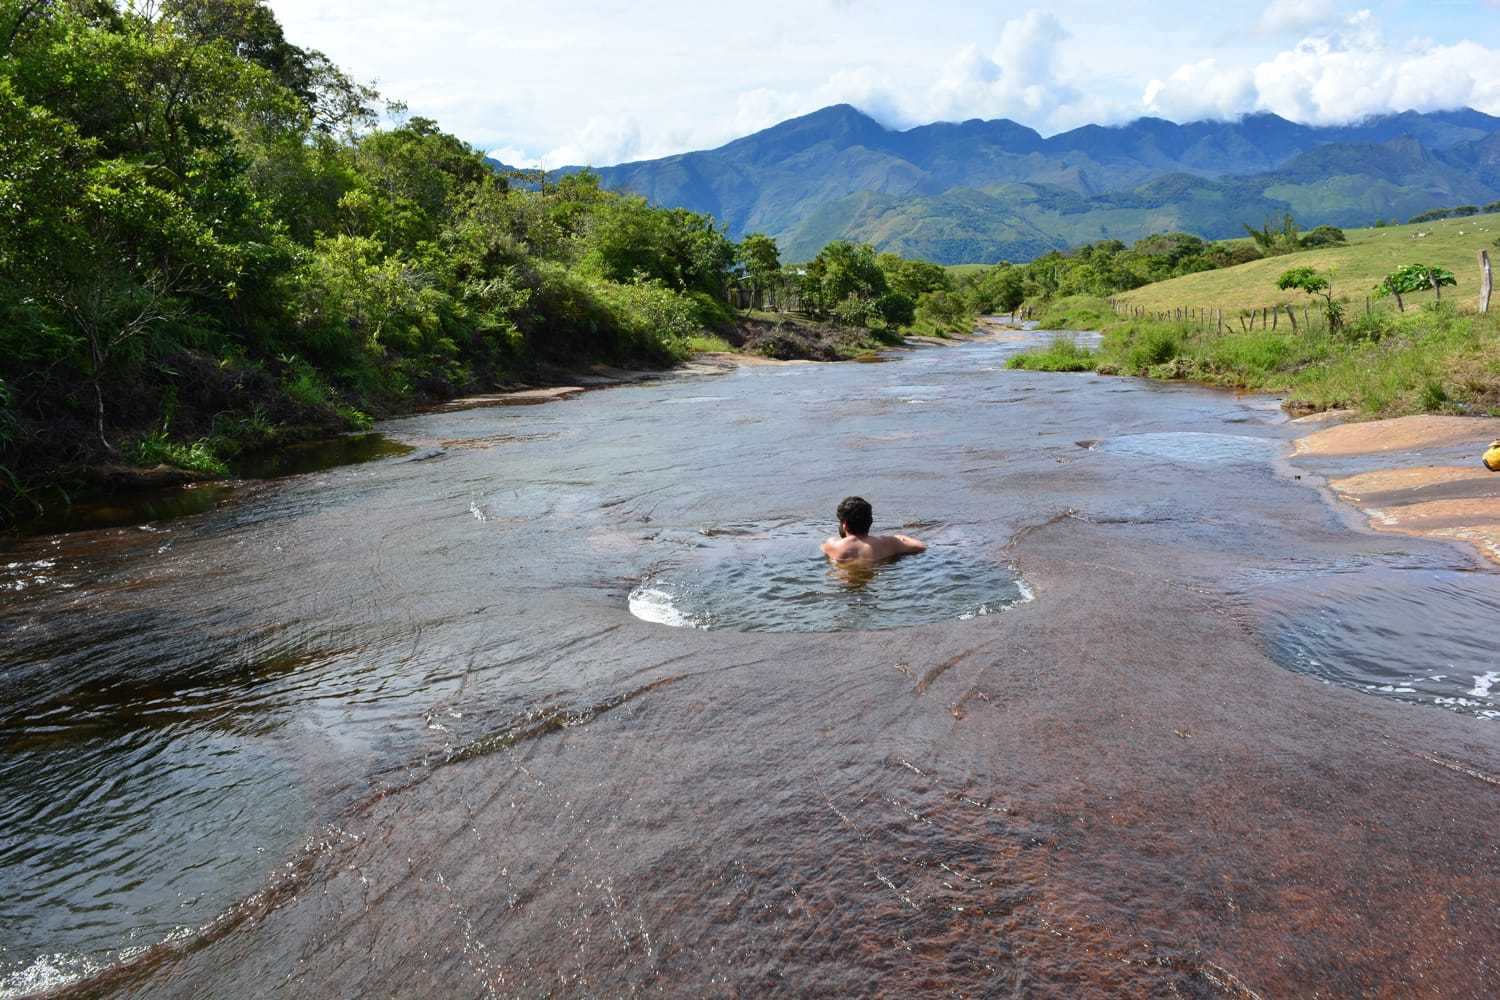 Unidentified man bathing in las gachas river, near to Guadalupe colonial town, in Colombia